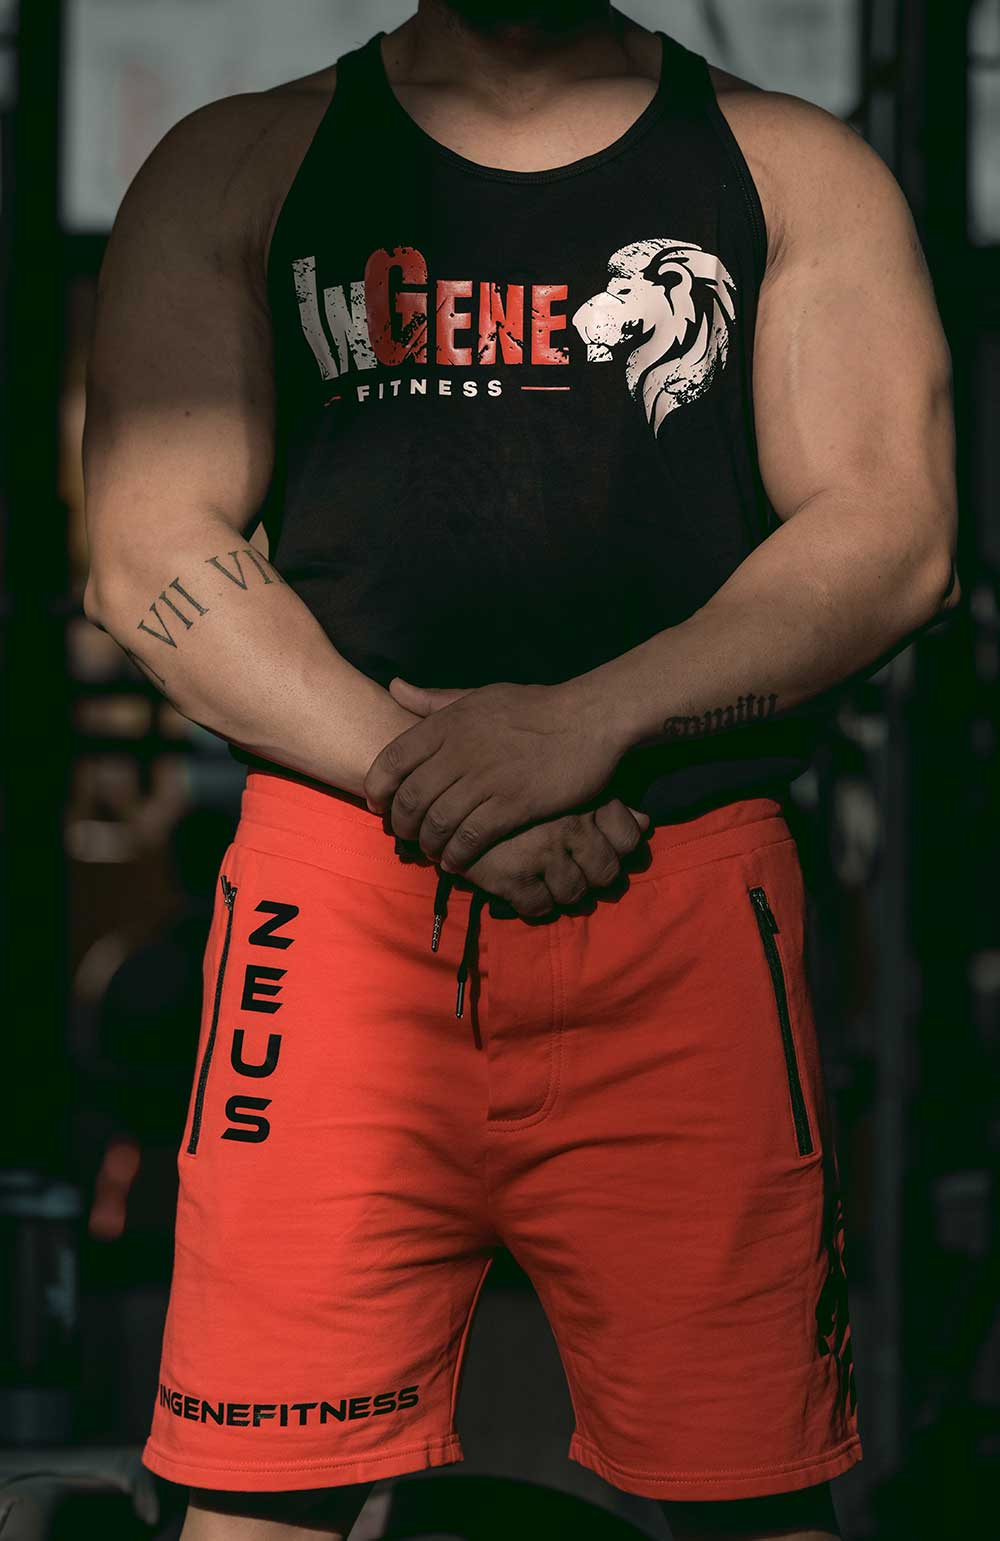 Brand Ambassador Bodybuilding Champion Nitin Sharma in InGene Fitness Black Signature Red Shorts